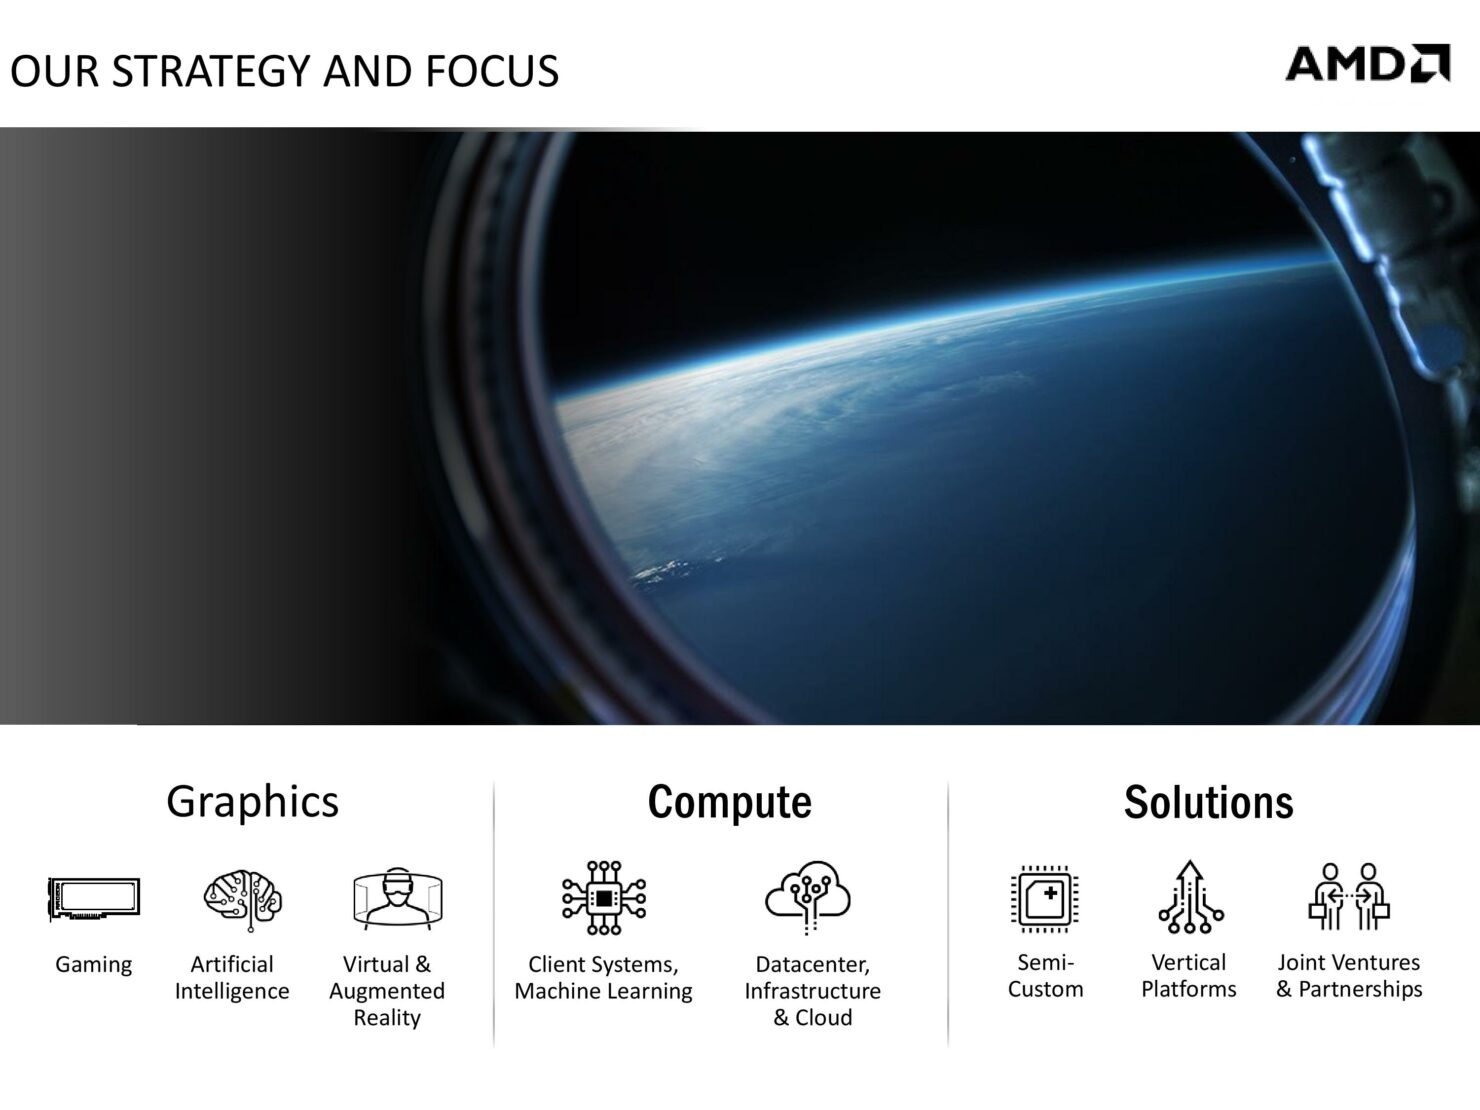 amd-cfo-commentary-slides-q4-16-page-005